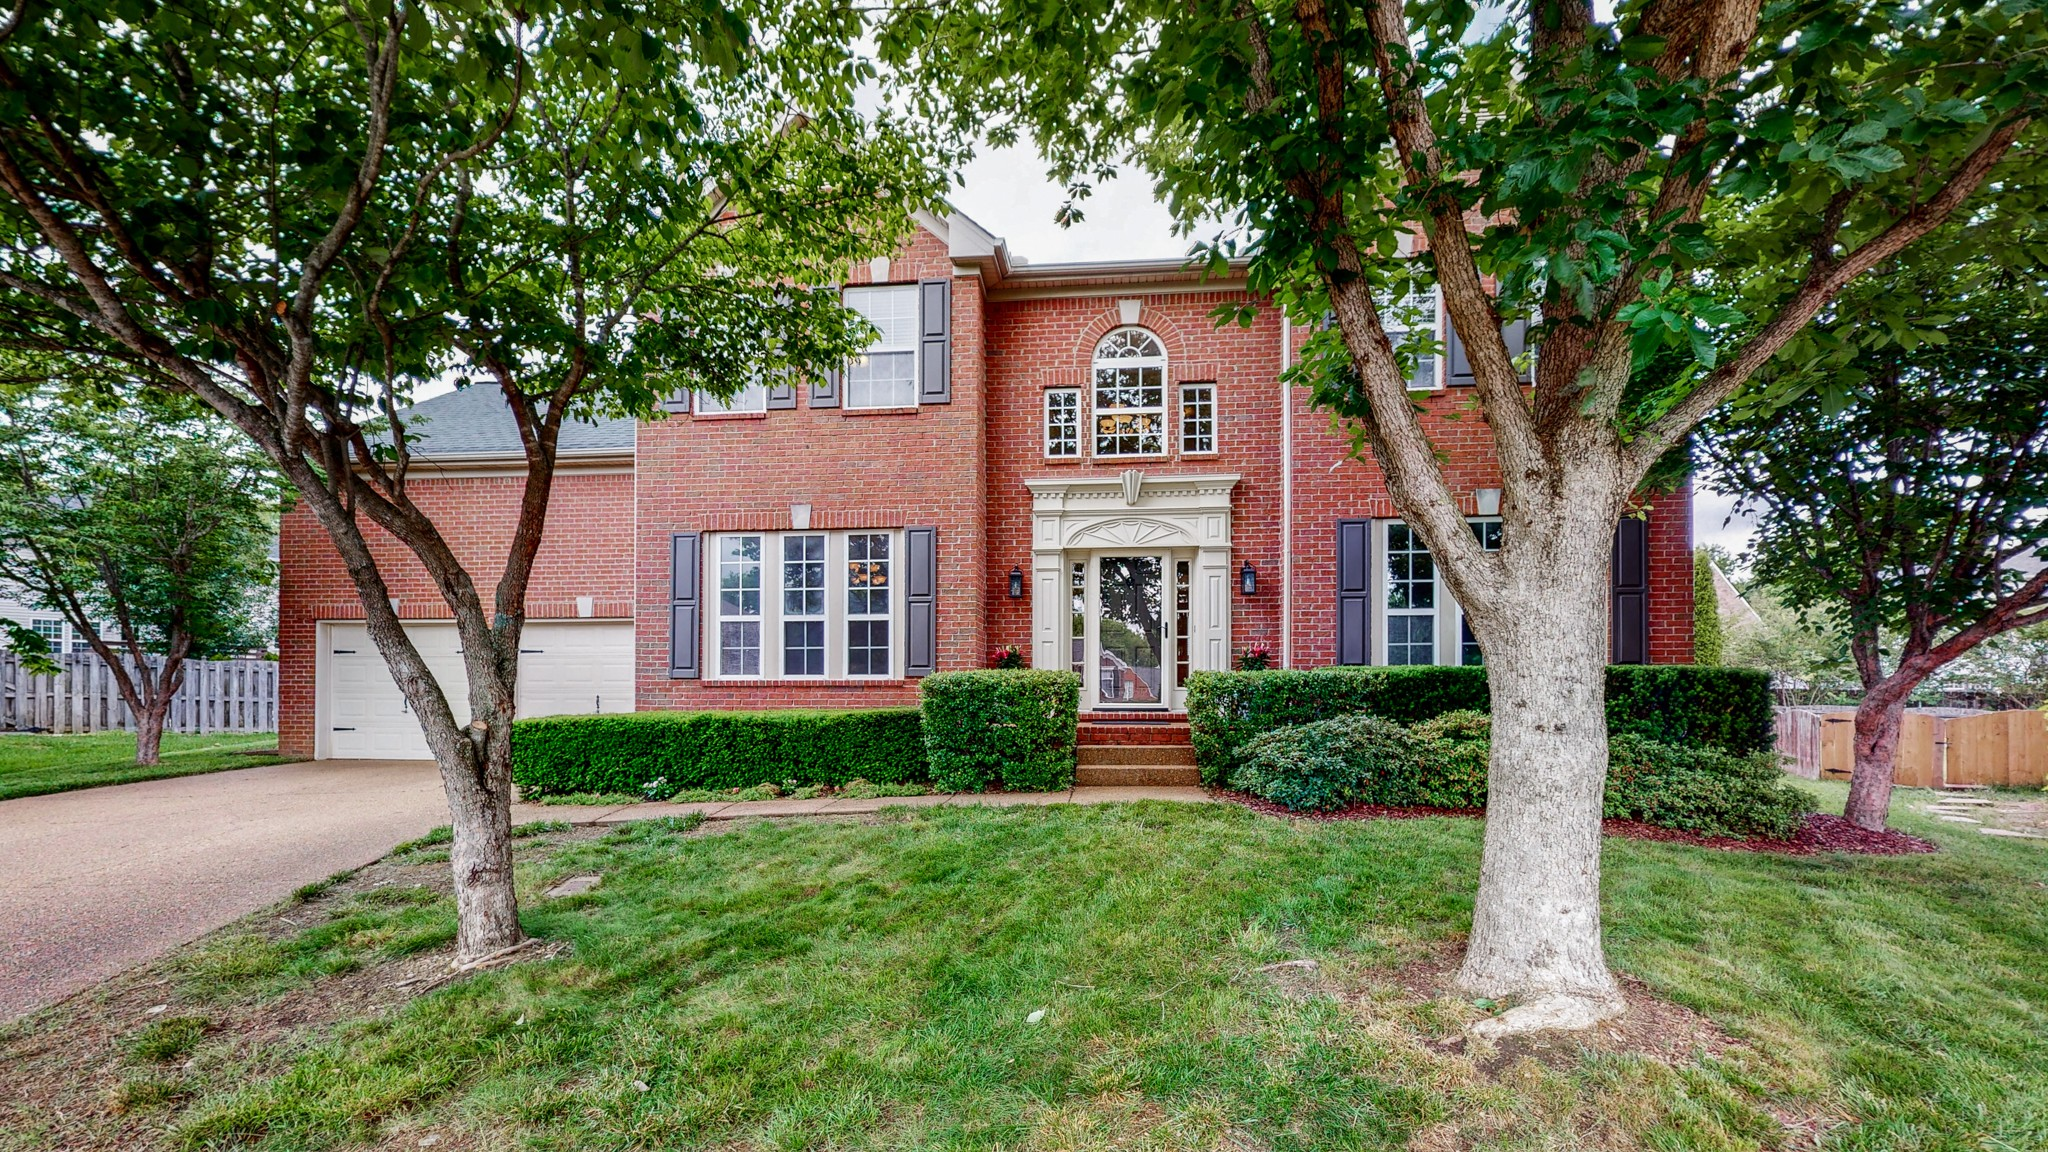 Great all brick four bedroom with bonus room, formal dining room, large open family room/living room and office.  Sweeping fenced back yard with privacy and raised bed garden.  Modern kitchen, granite counter tops with subway back splash.  This back yard on the cul de sac is roomy and private for back yard enjoyment. Freshly painted and ready to move in. Lots of natural privacy in the treed back yard with serene views from the kitchen, family room/living room and deck.  General Information